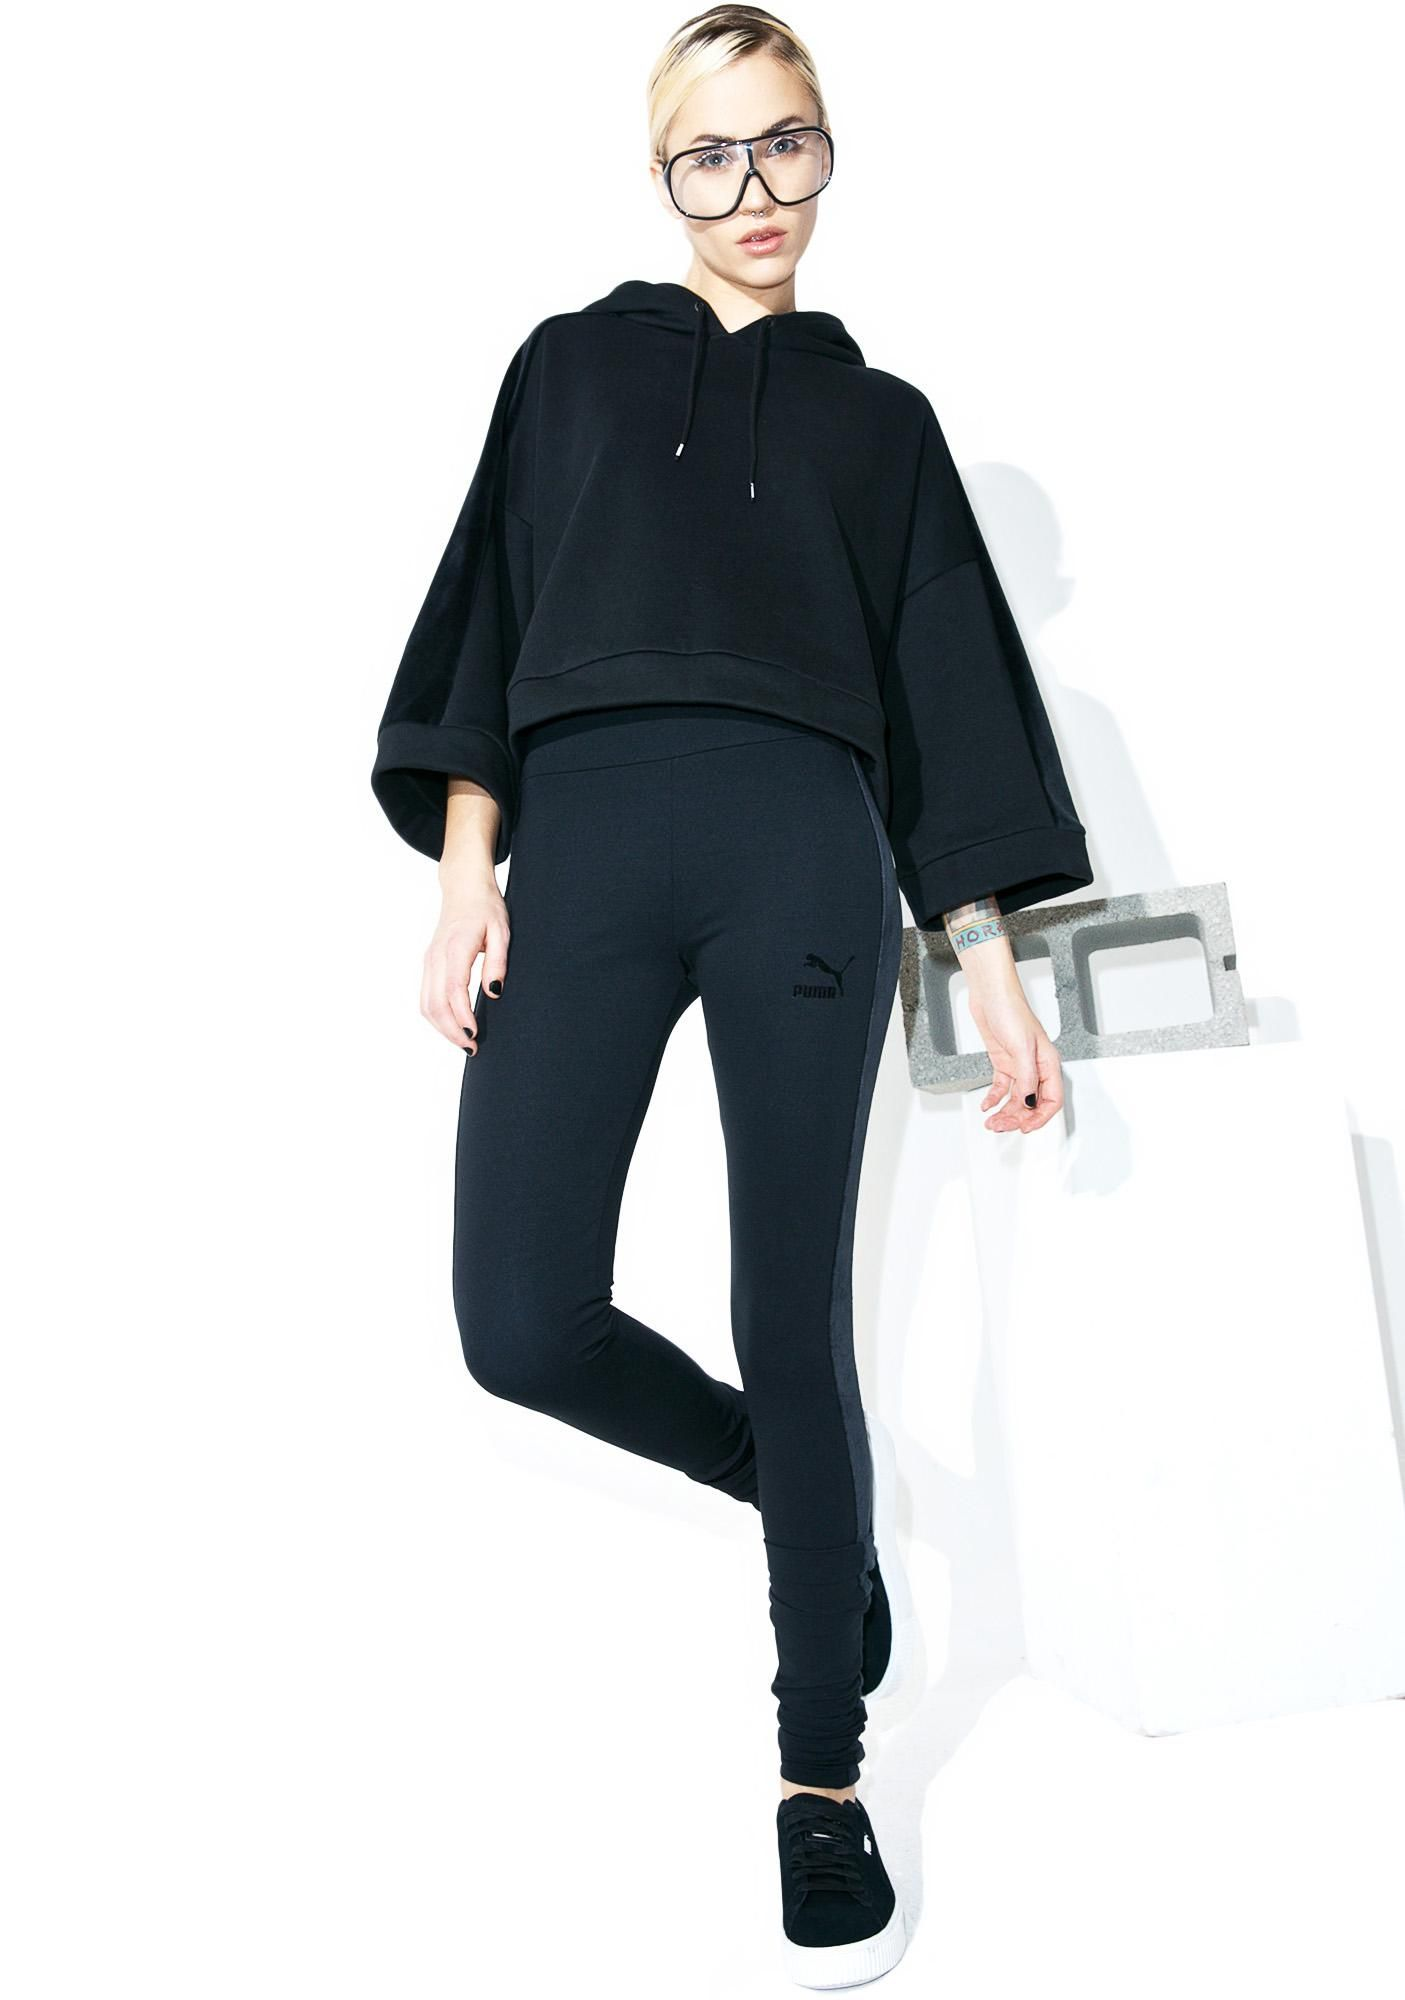 PUMA Xtreme Elongated Leggings stay ahead of the game, babe. These black leggings feature a curve-hugging fit, thick waistband, eXXXtra long legs, and a black velour stripe goin' down both legz.